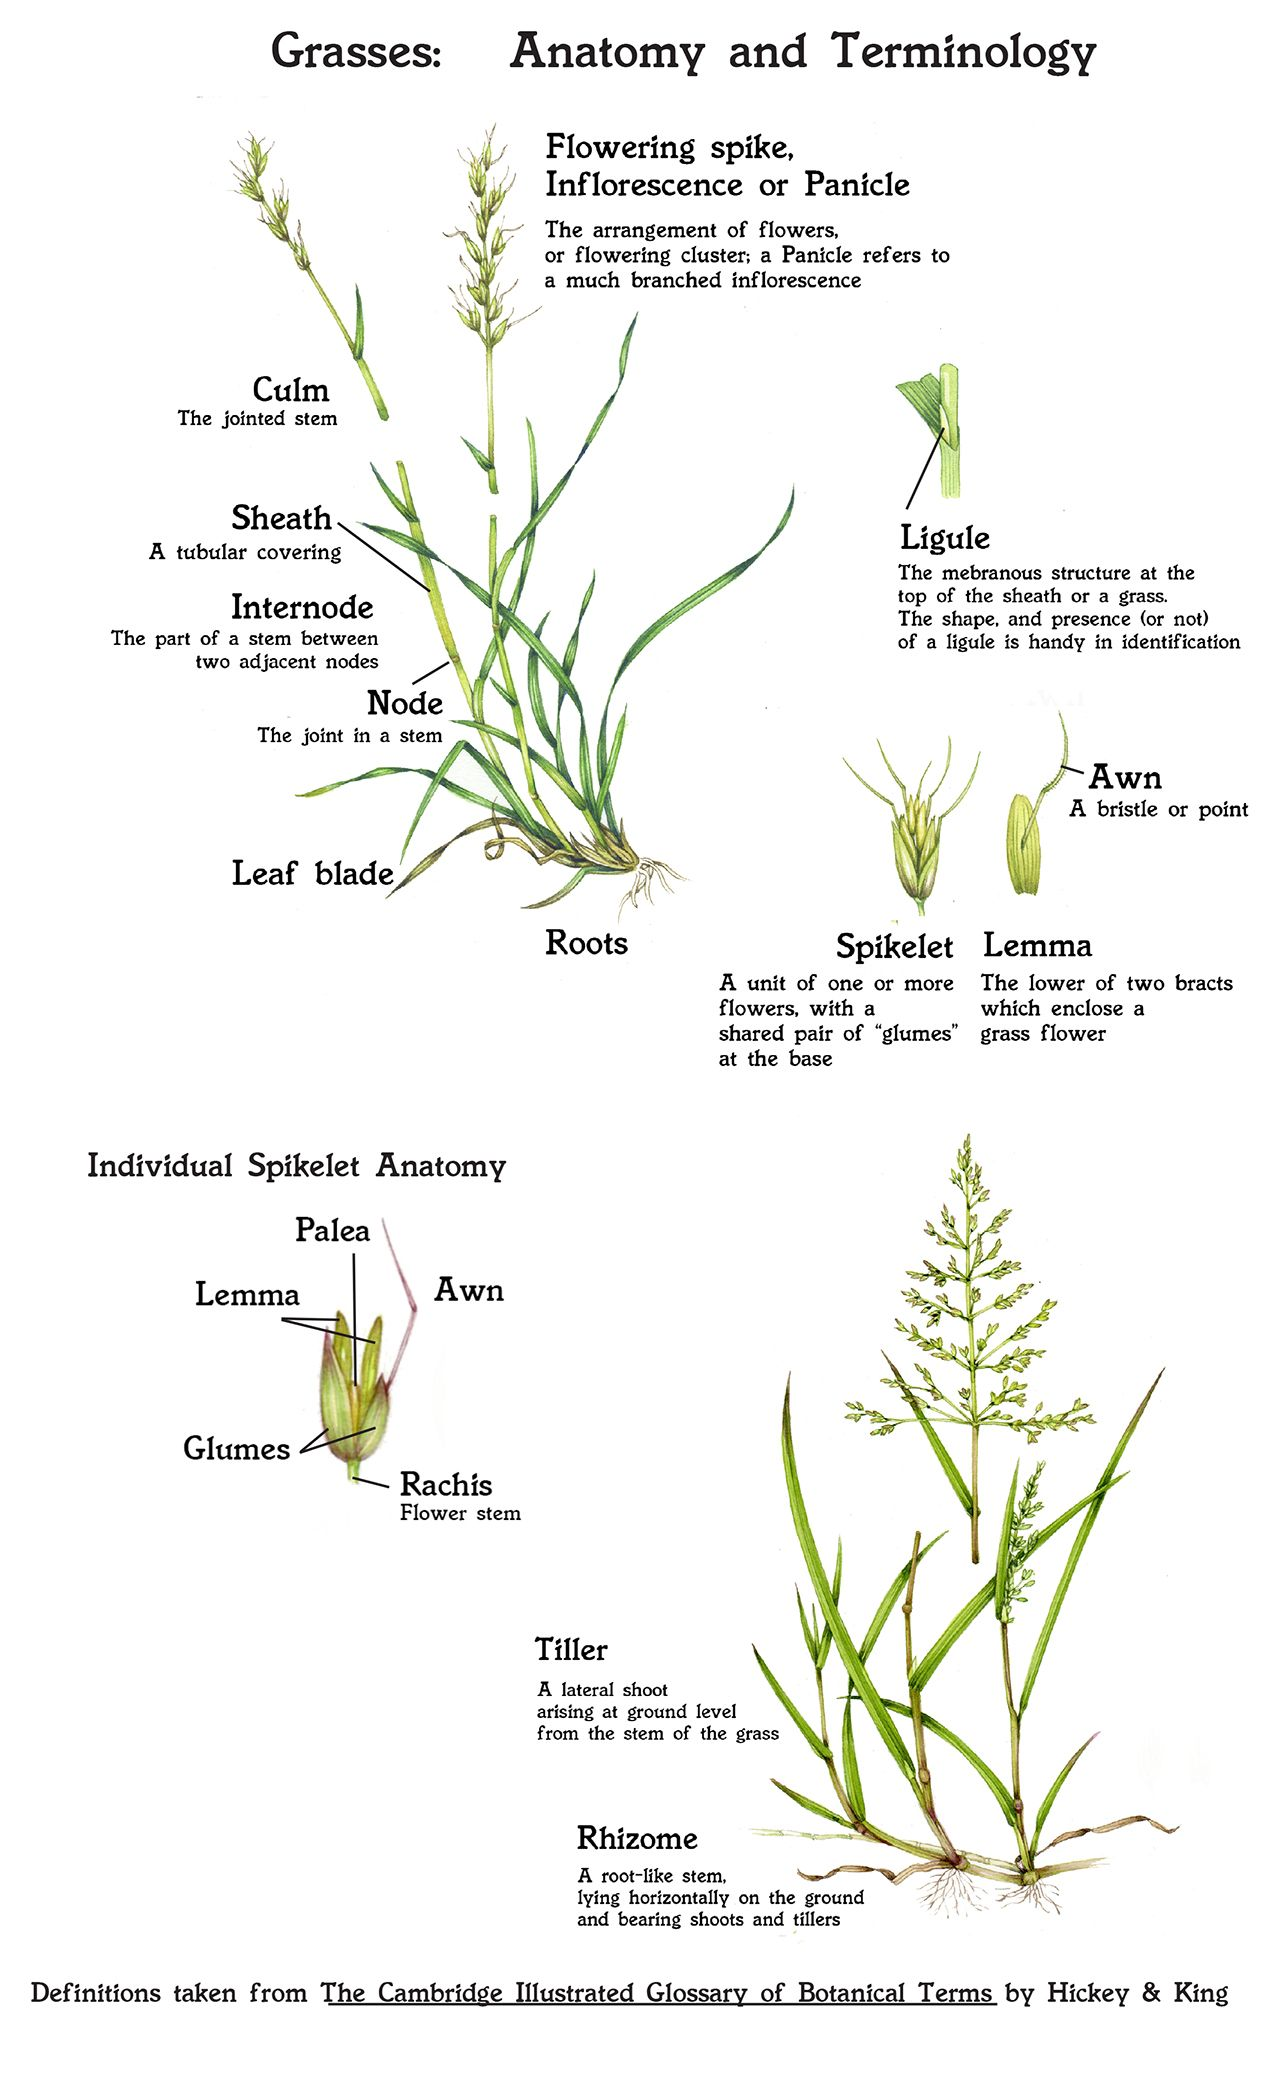 I Thought Adding A Little Page On The Anatomy Of The Grasses